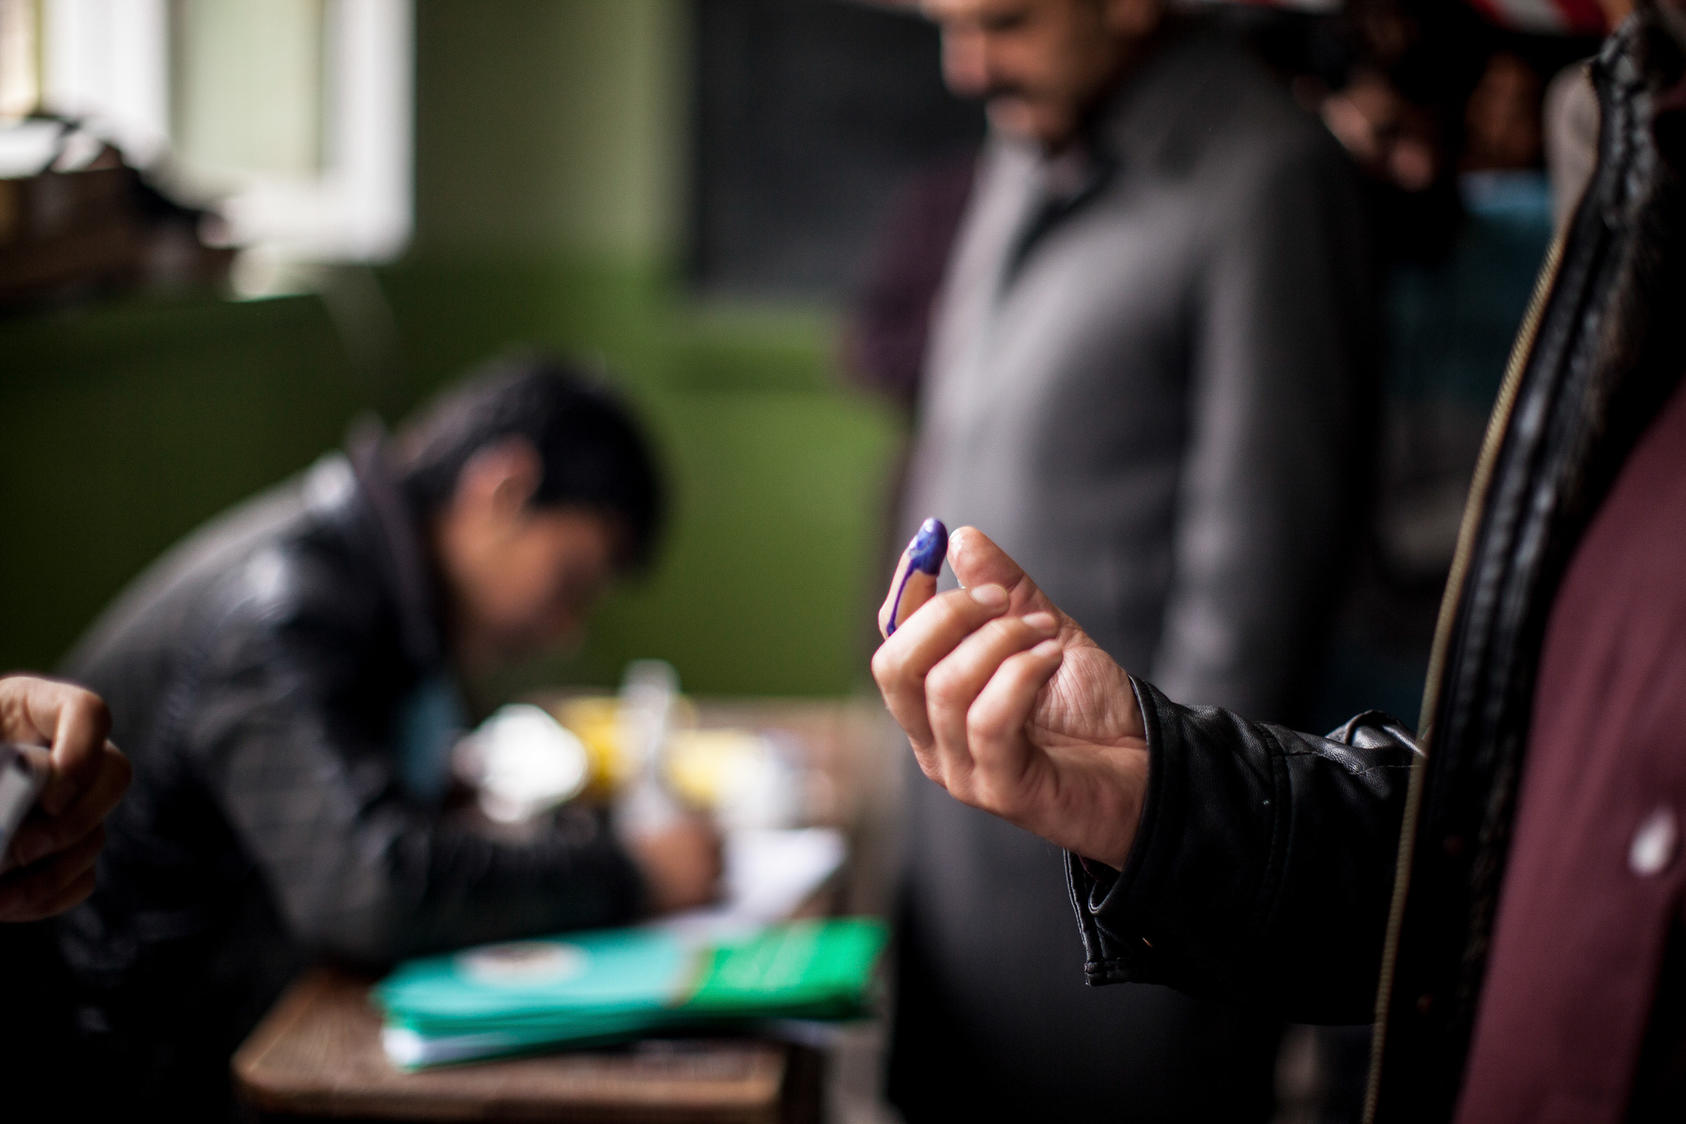 Purple ink was used to mark the fingers of voters in the general election, at a school in Kabul, Afghanistan, April 5, 2014.